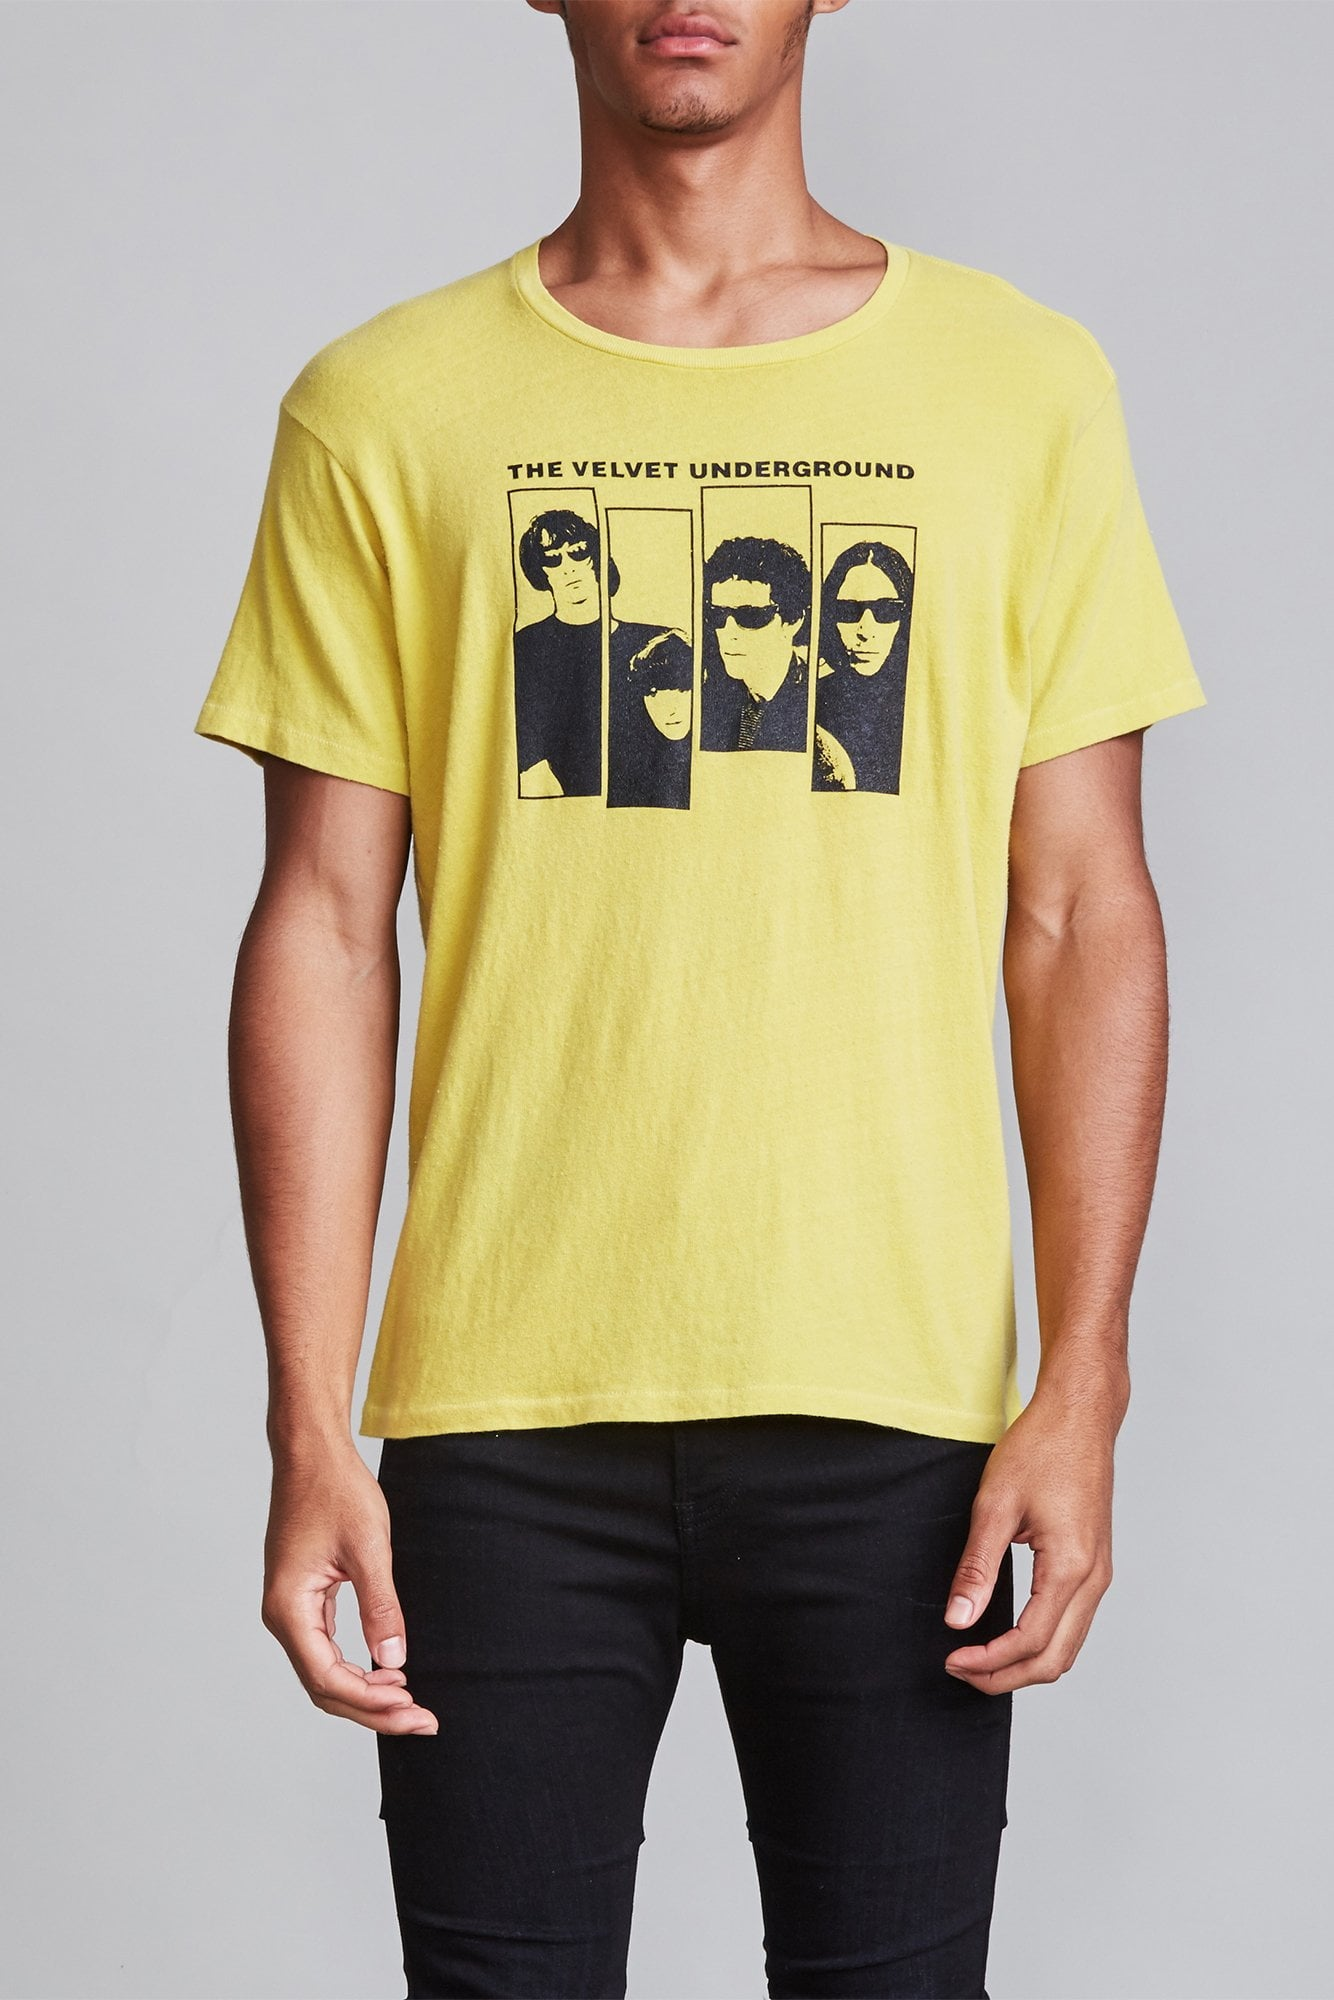 Velvet Underground Boy T - Yellow